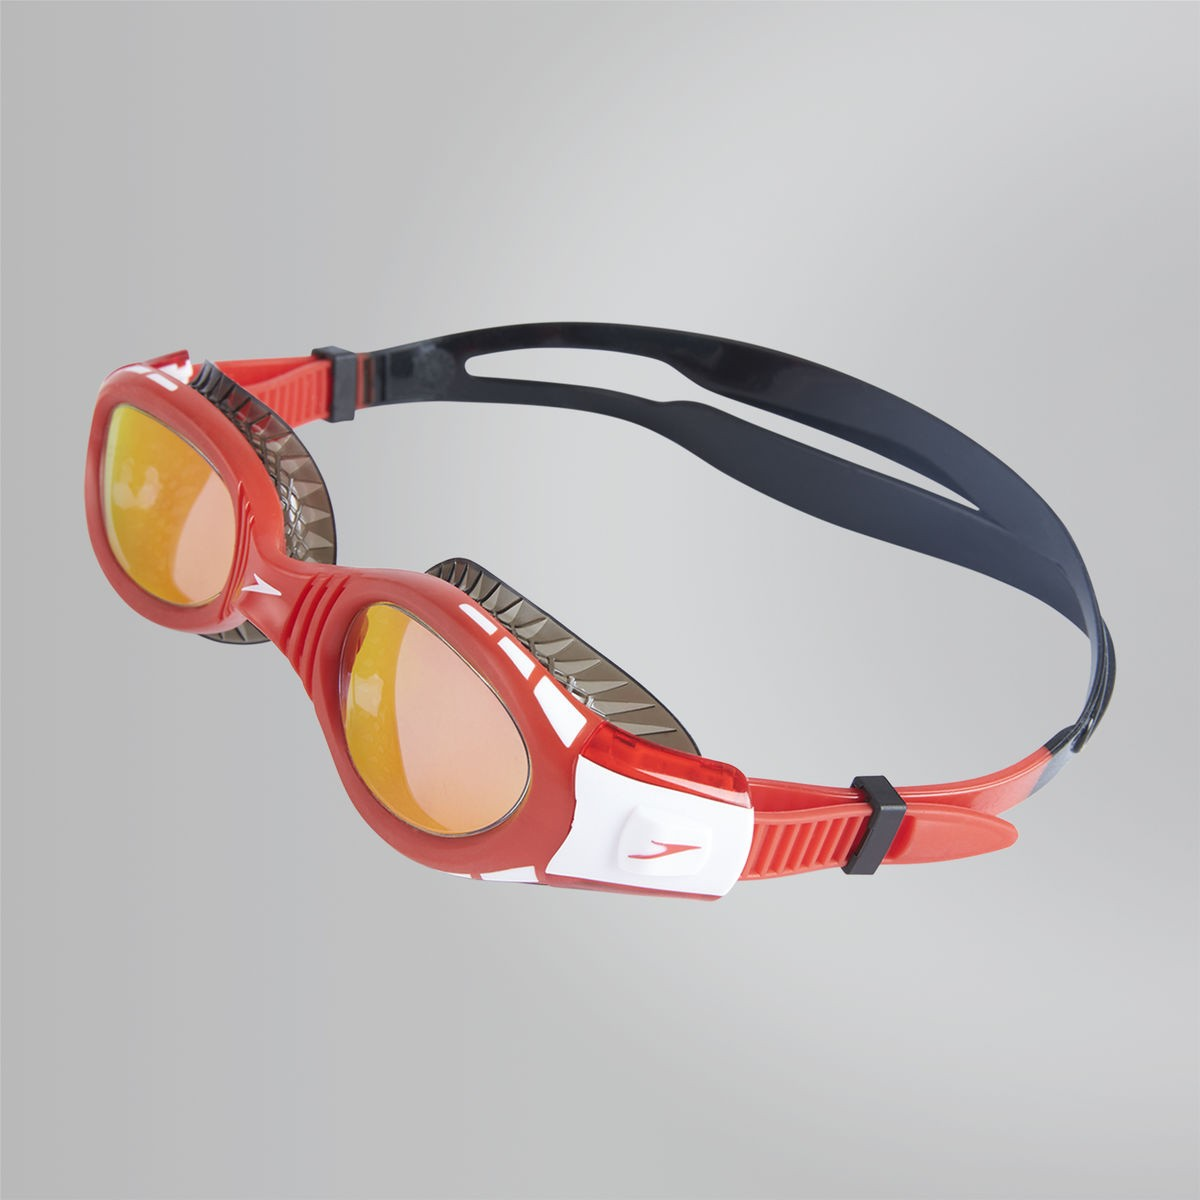 Speedo Zwembril Futura Biofuse Mirror JR red/black